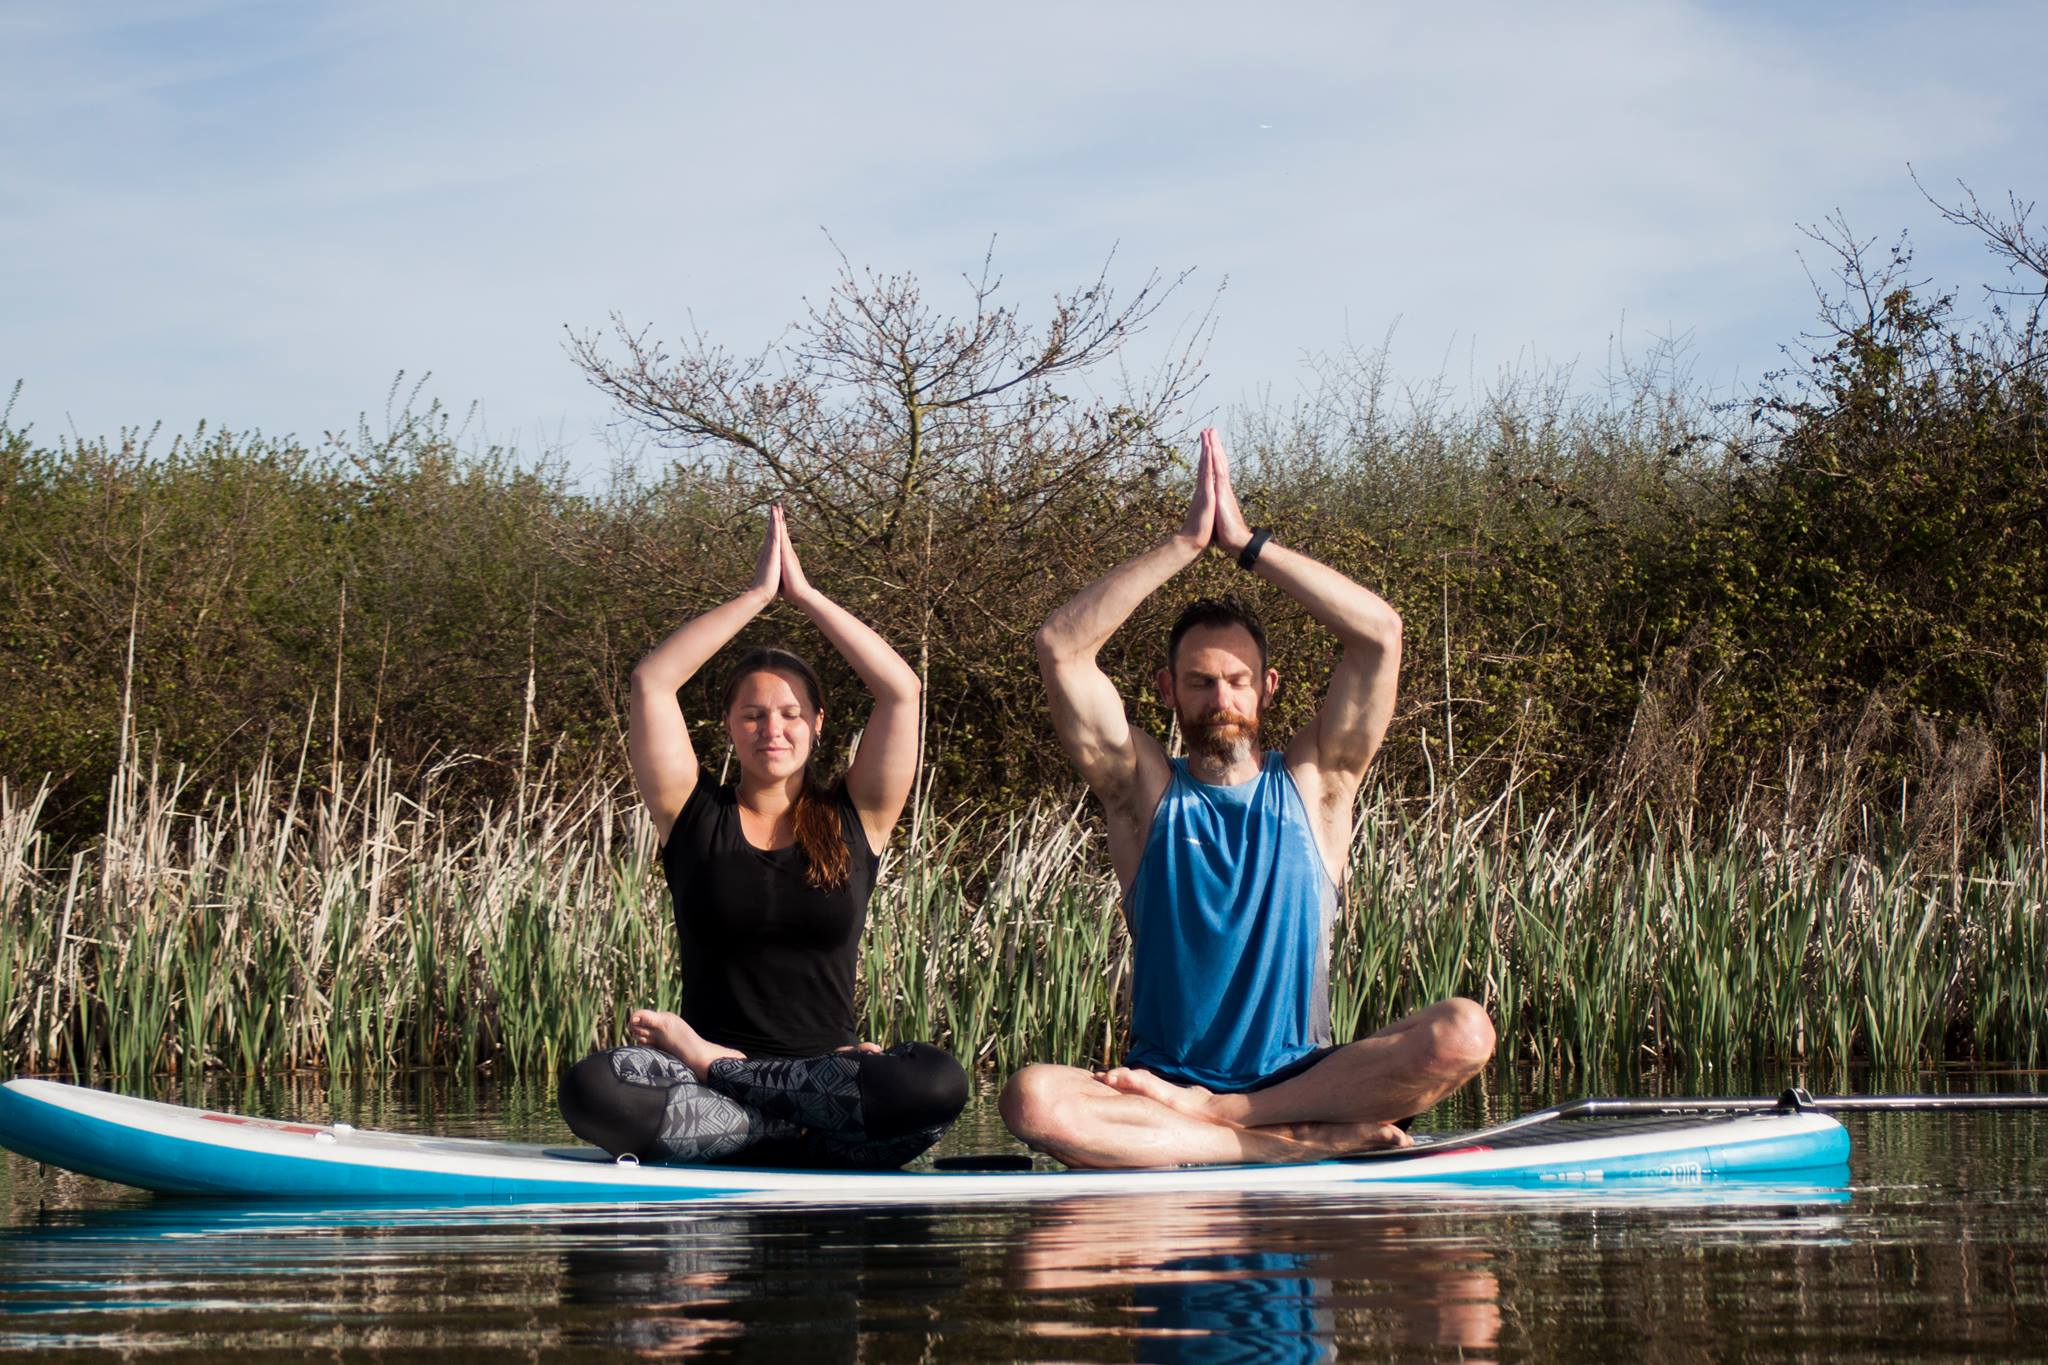 Learn Yoga on a Paddleboard